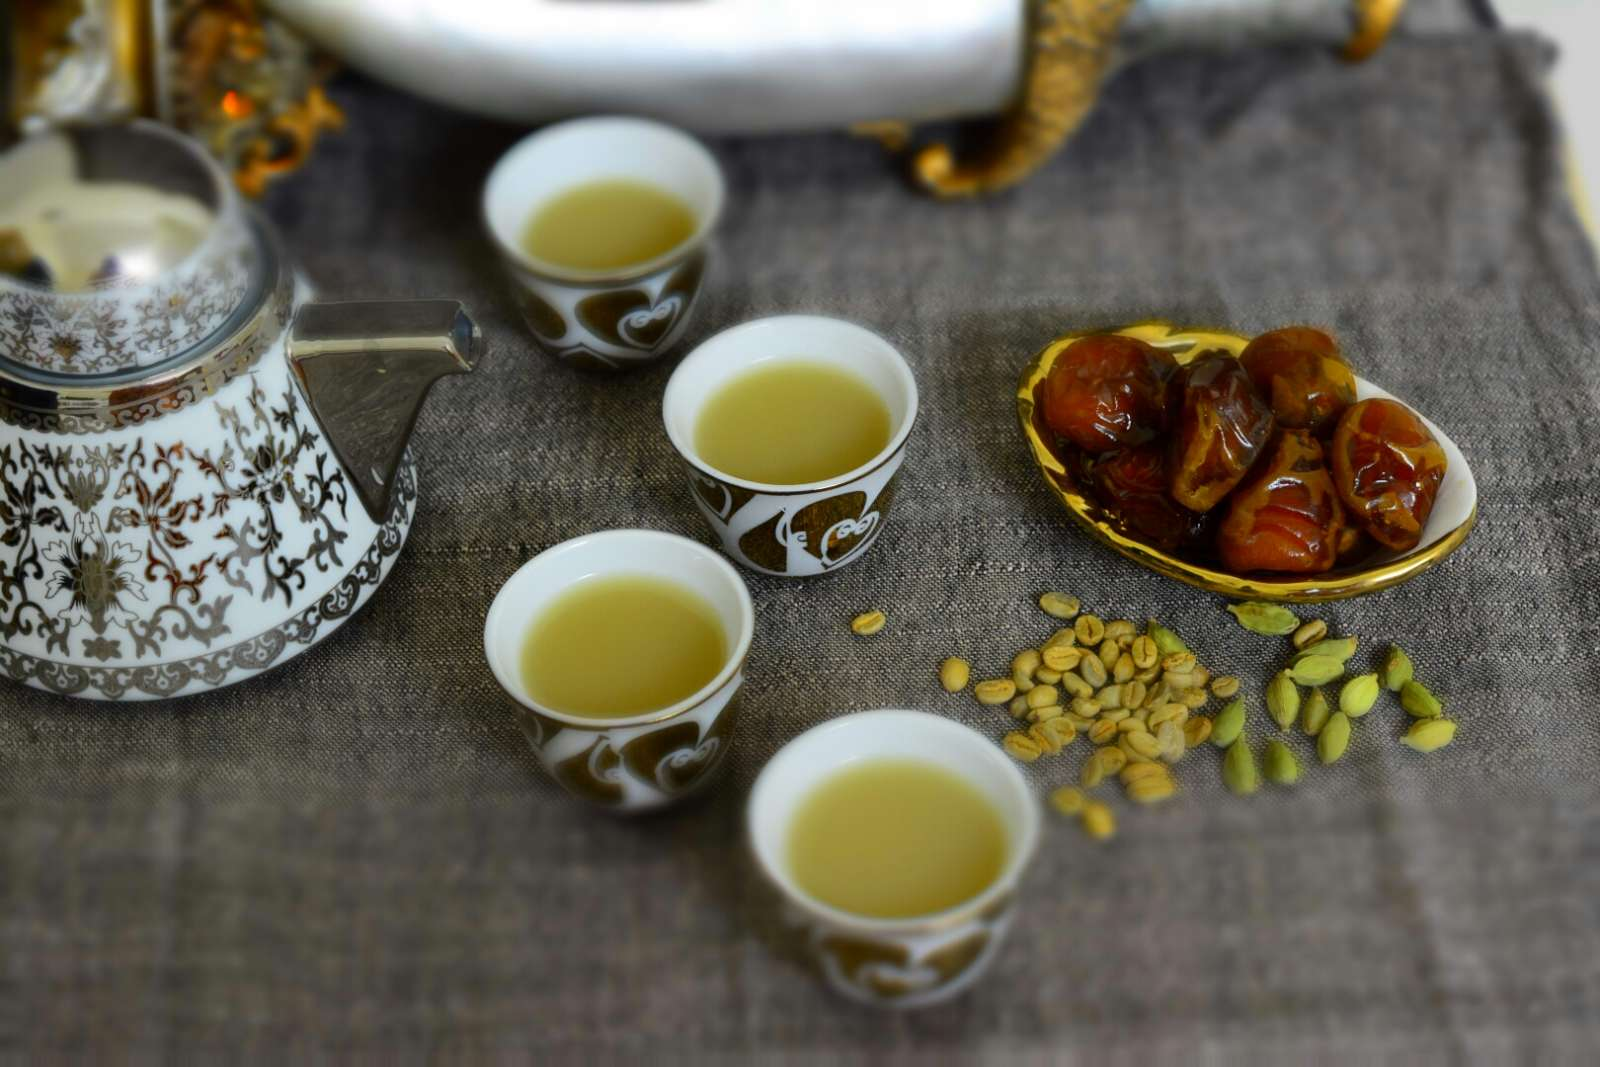 Qawha arabic coffee